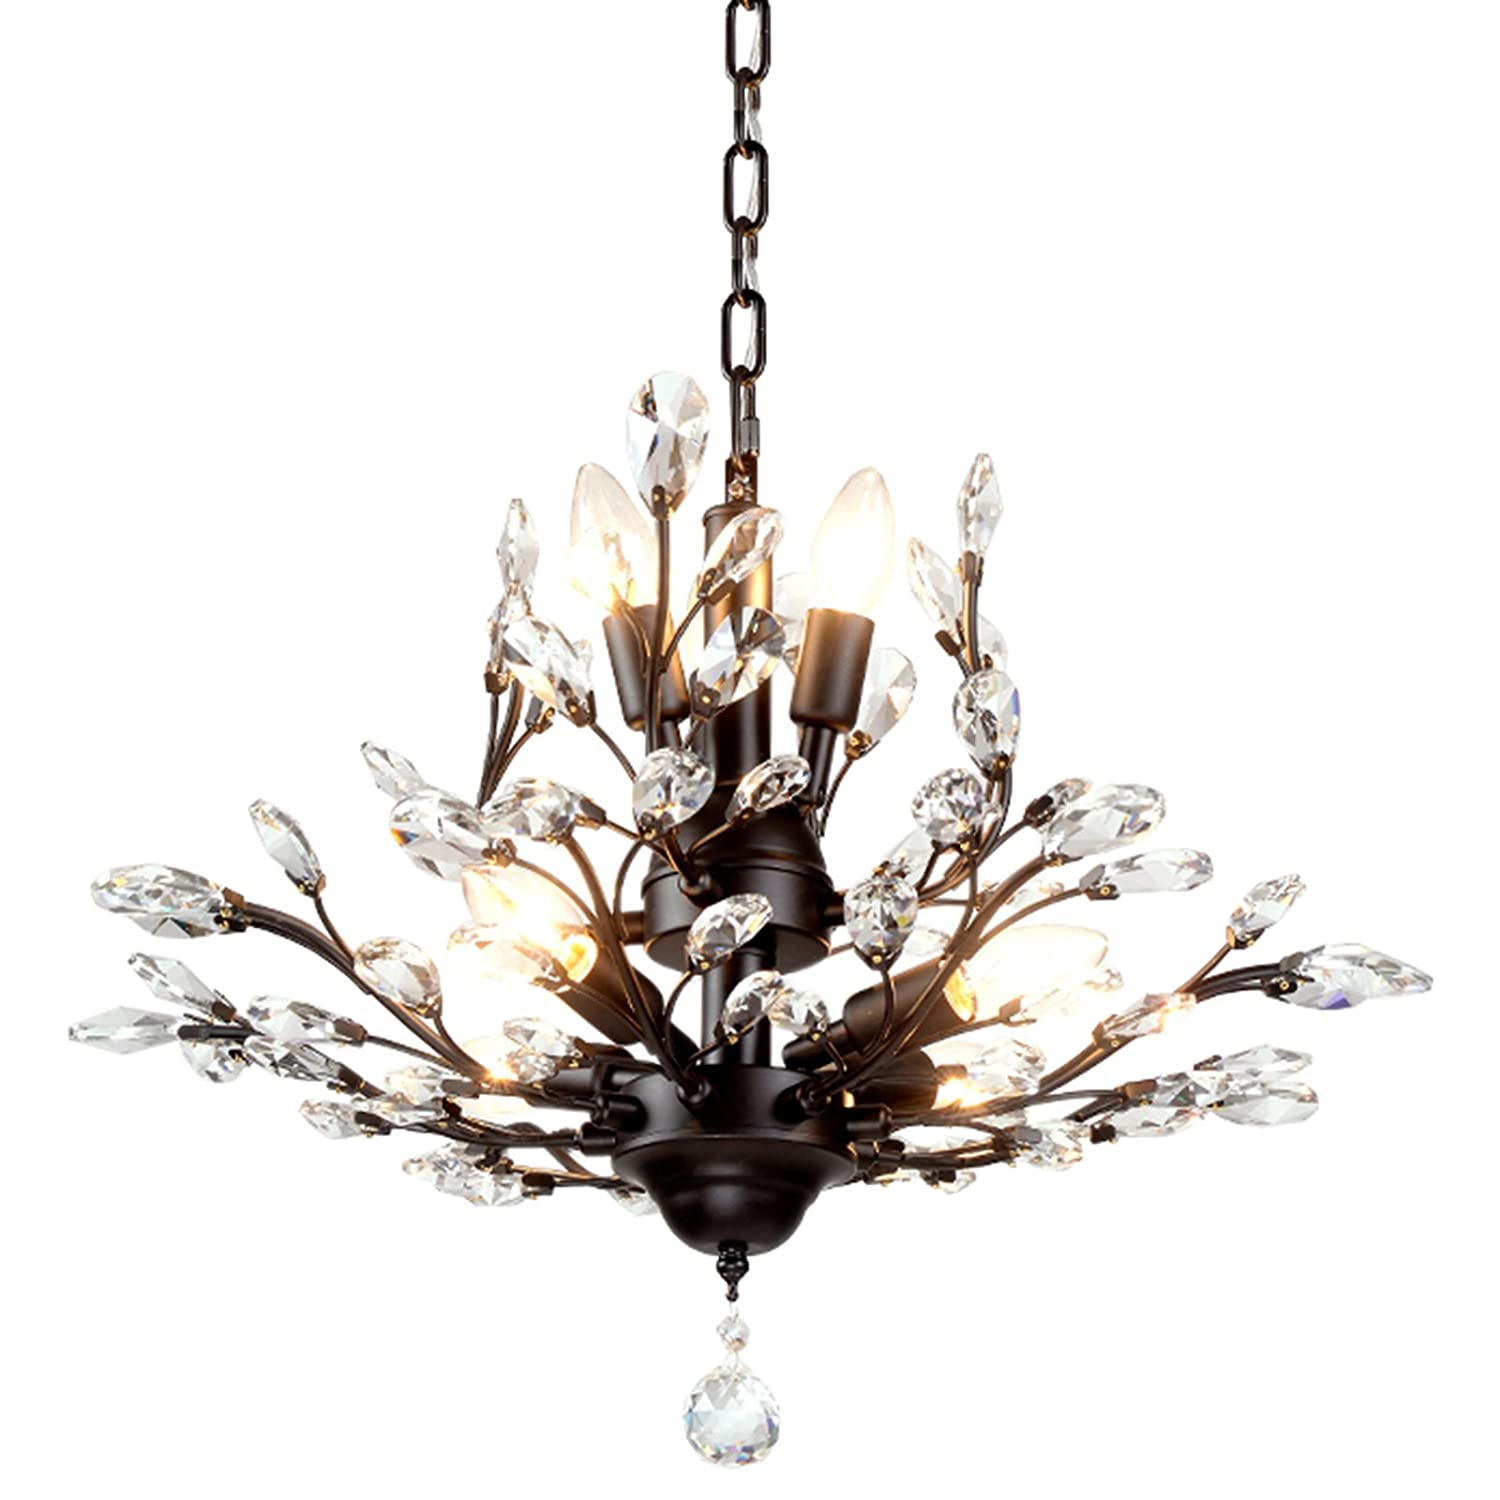 Seol light vintage crystal branch chandeliers black ceiling pendant light flush mounted fixture with 7 lightmax280w for living room dinning table porch